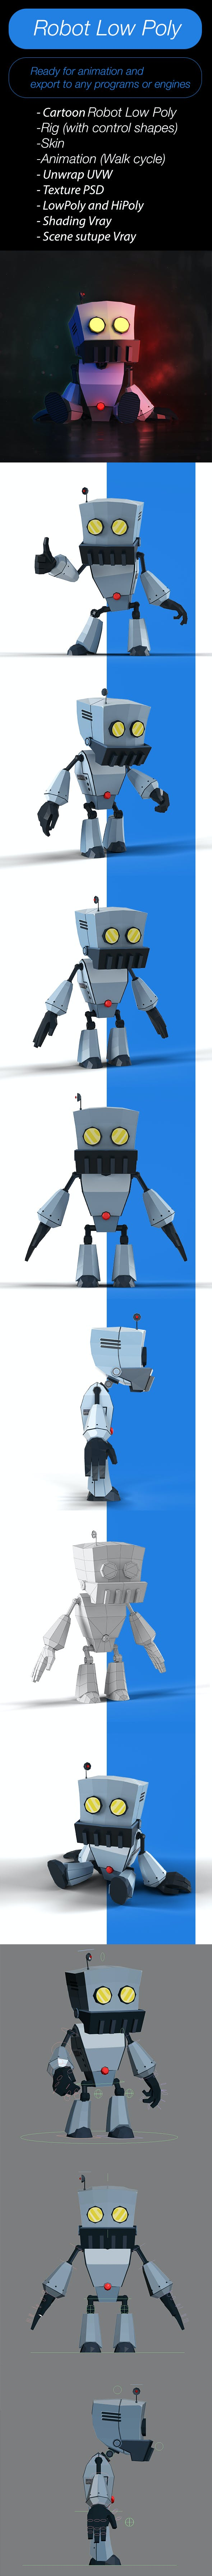 Robot_LowPoly - 3DOcean Item for Sale